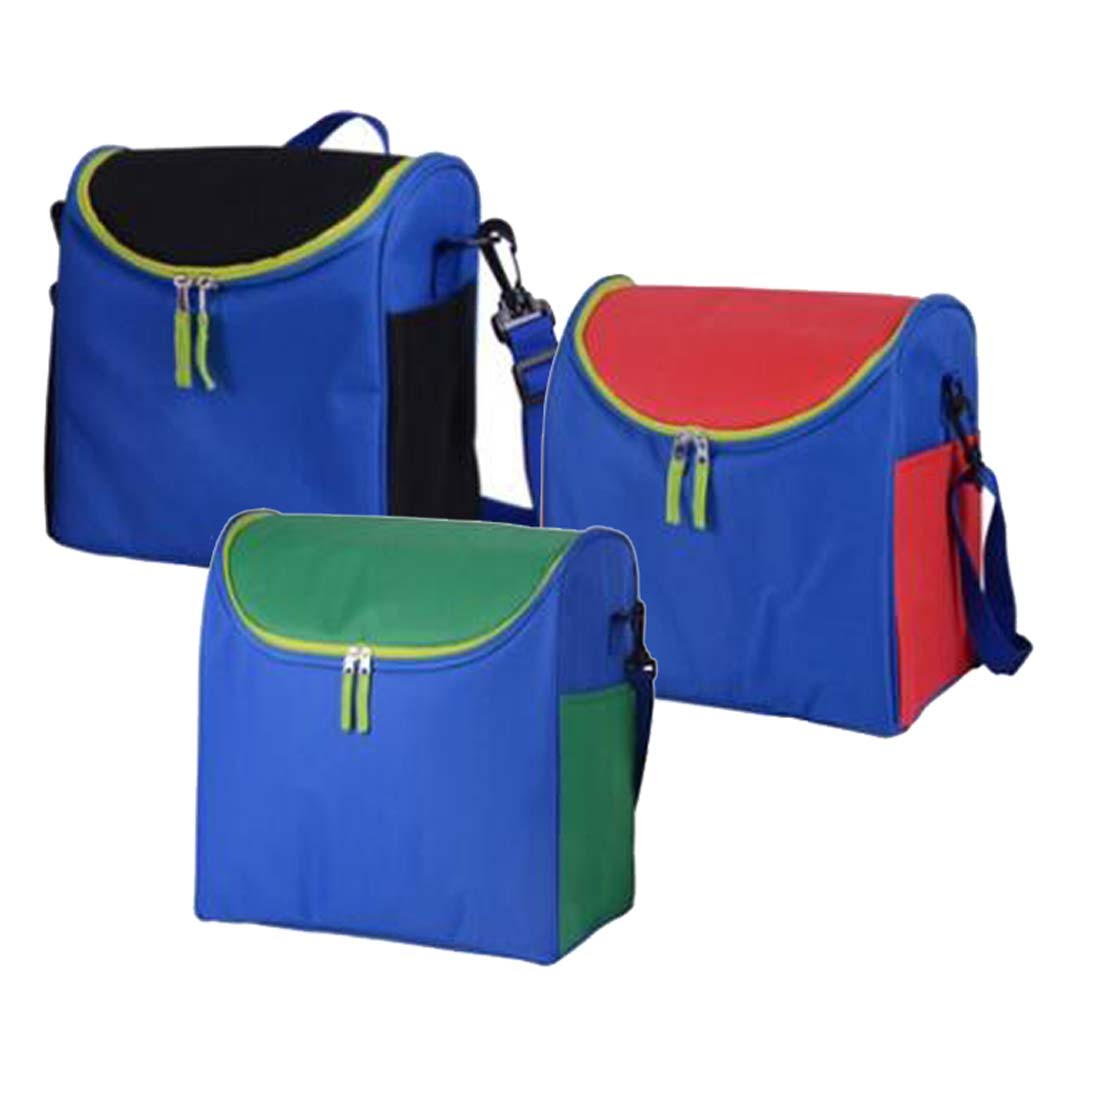 View CANVAS COOLER 6 CANS INSULATED ASSORTED COLORS